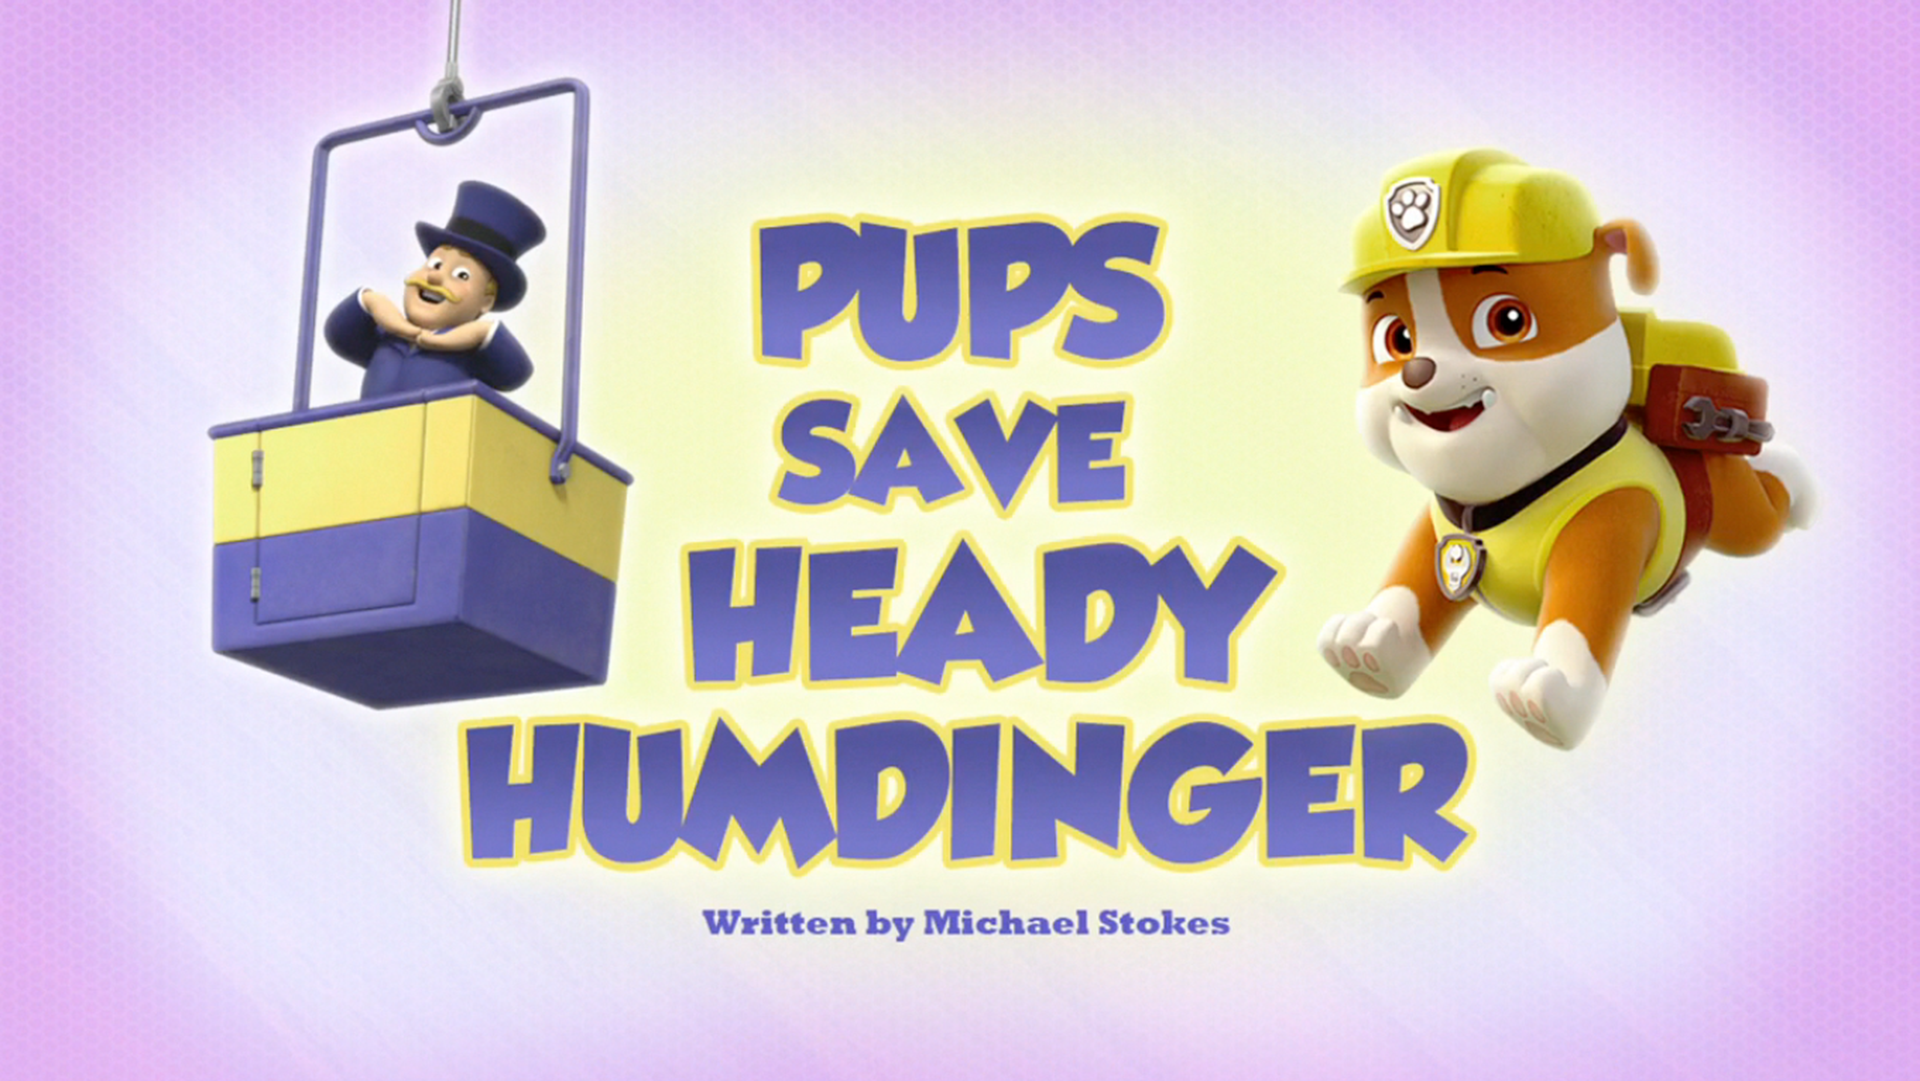 Pups_Save_Heady_Humdinger_(HQ).png